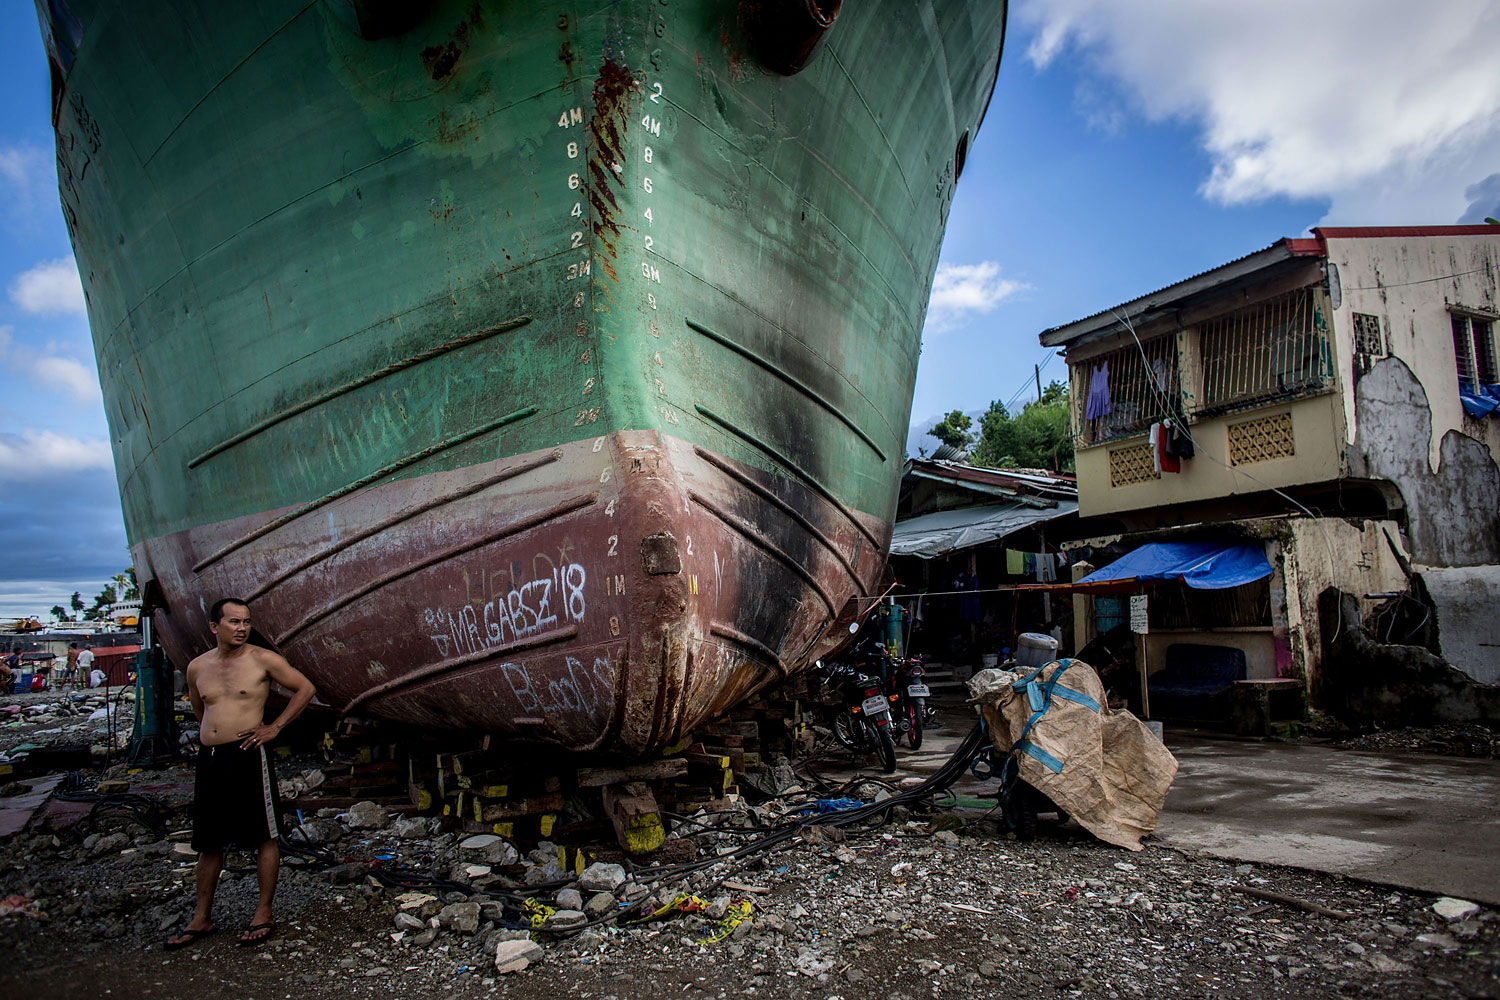 A man stands in front of a large ship grounded by Typhoon Haiyan on April 18, 2014 in Tacloban, Leyte, Philippines,